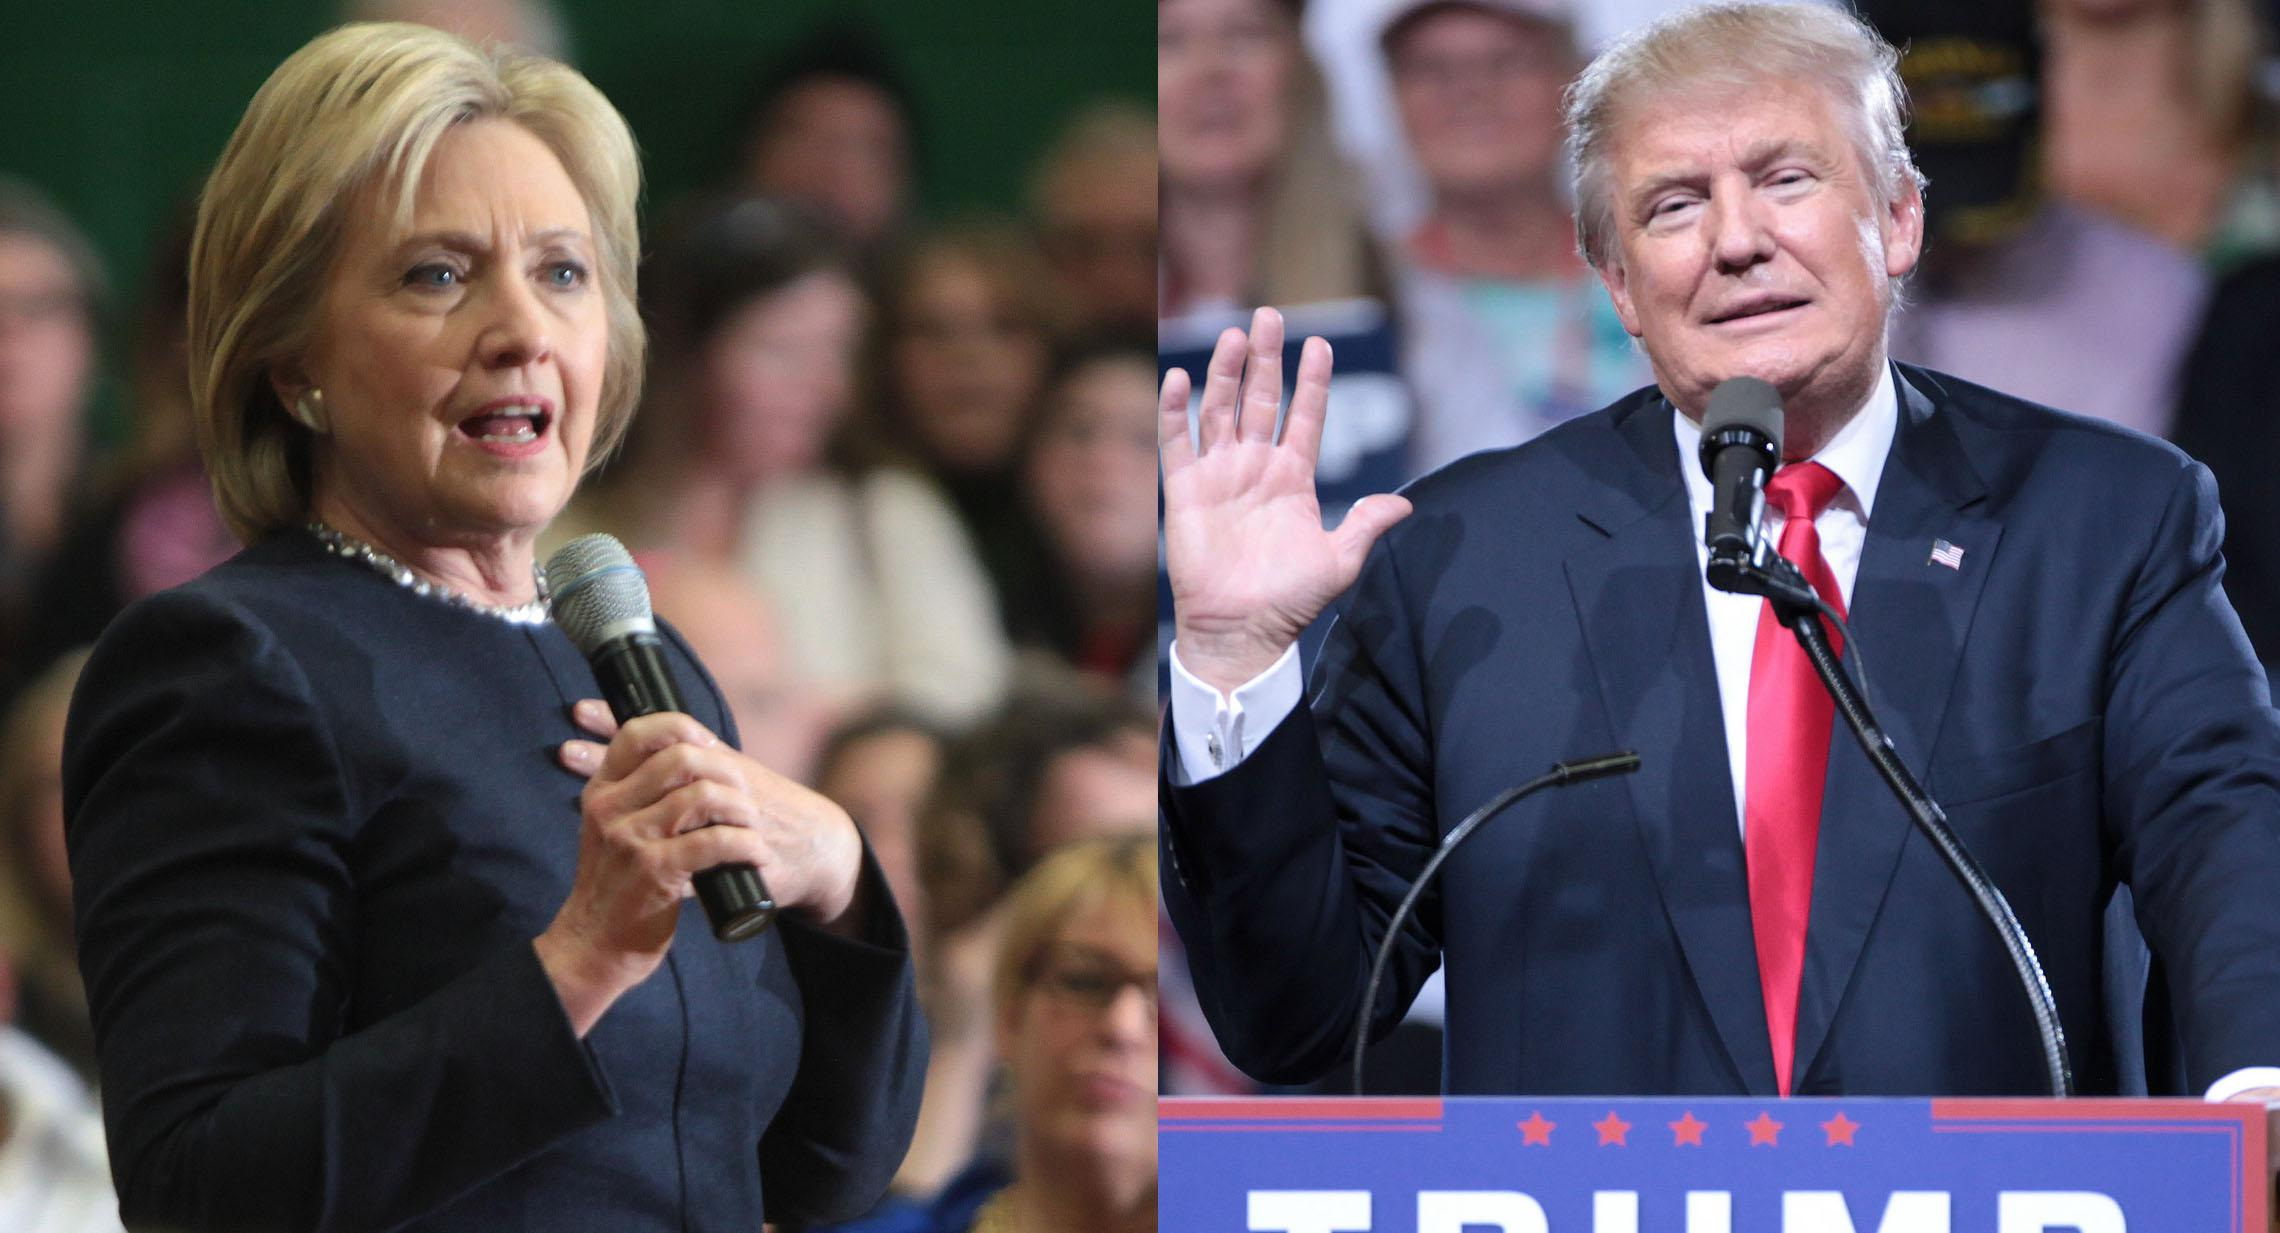 an analysis of the debate between hillary clinton and donald trump in hofstra university What's the point of a presidential debate you could, if you were so inclined, distill monday's marquee clash between donald trump and hillary clinton at hofstra university to a single.